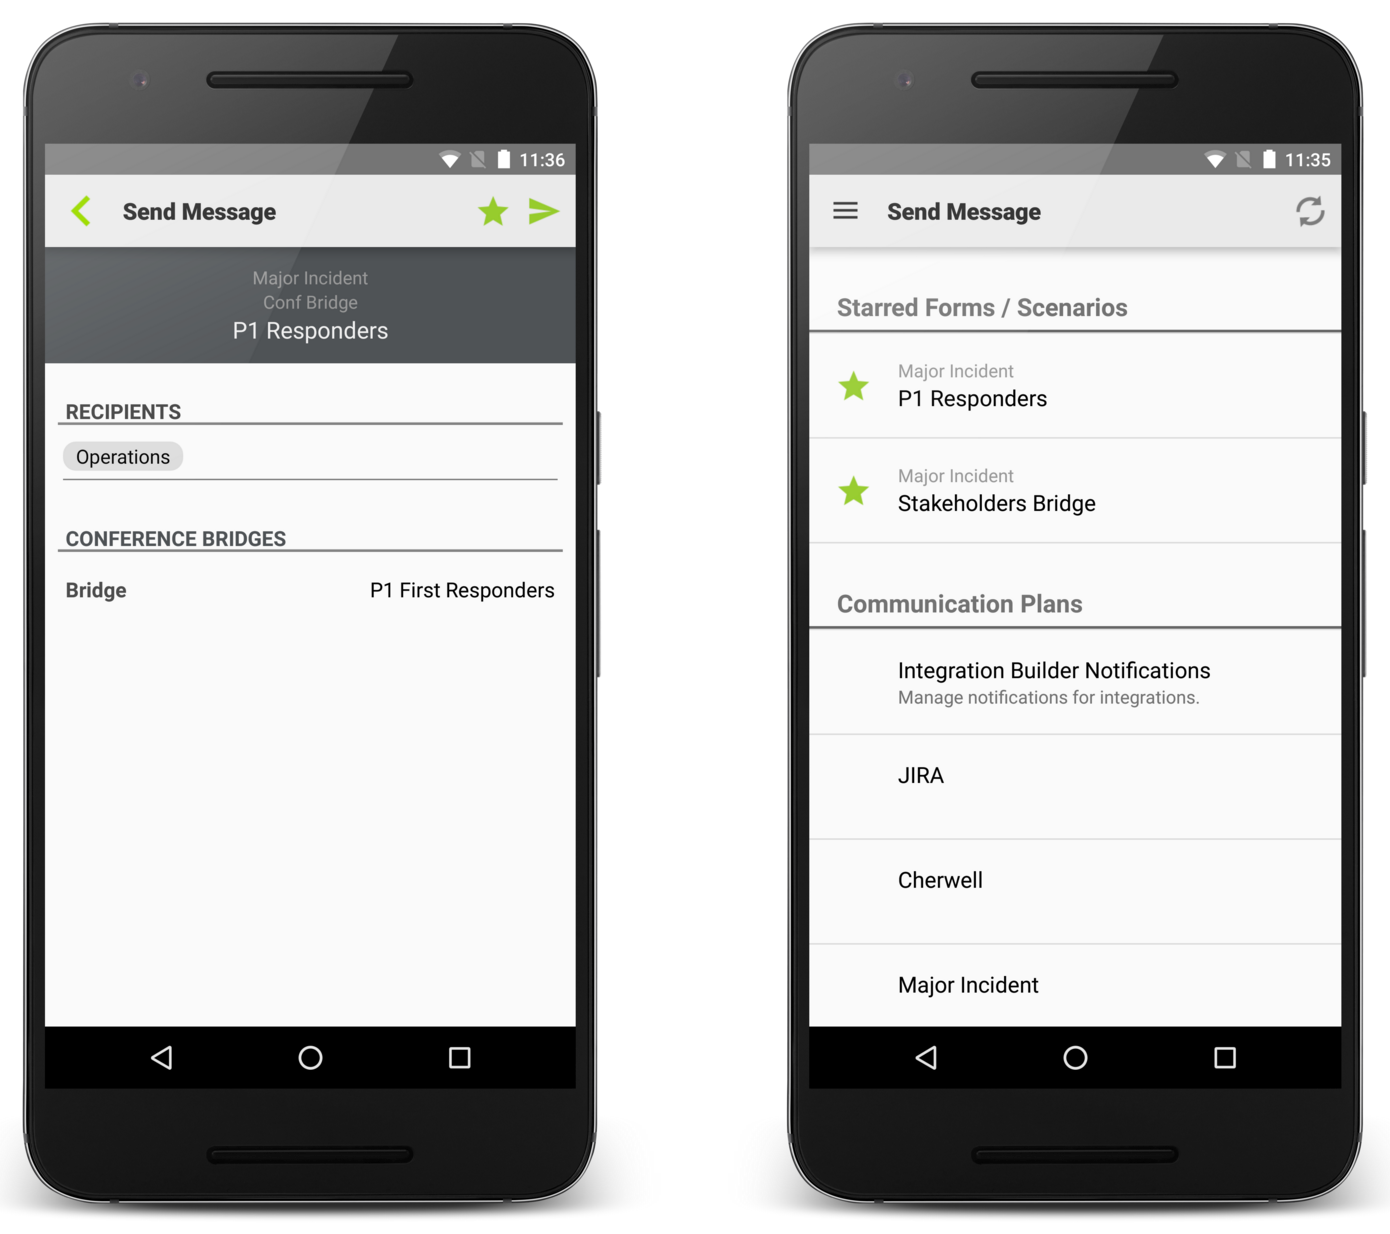 Starred forms and scenarios for the Android app